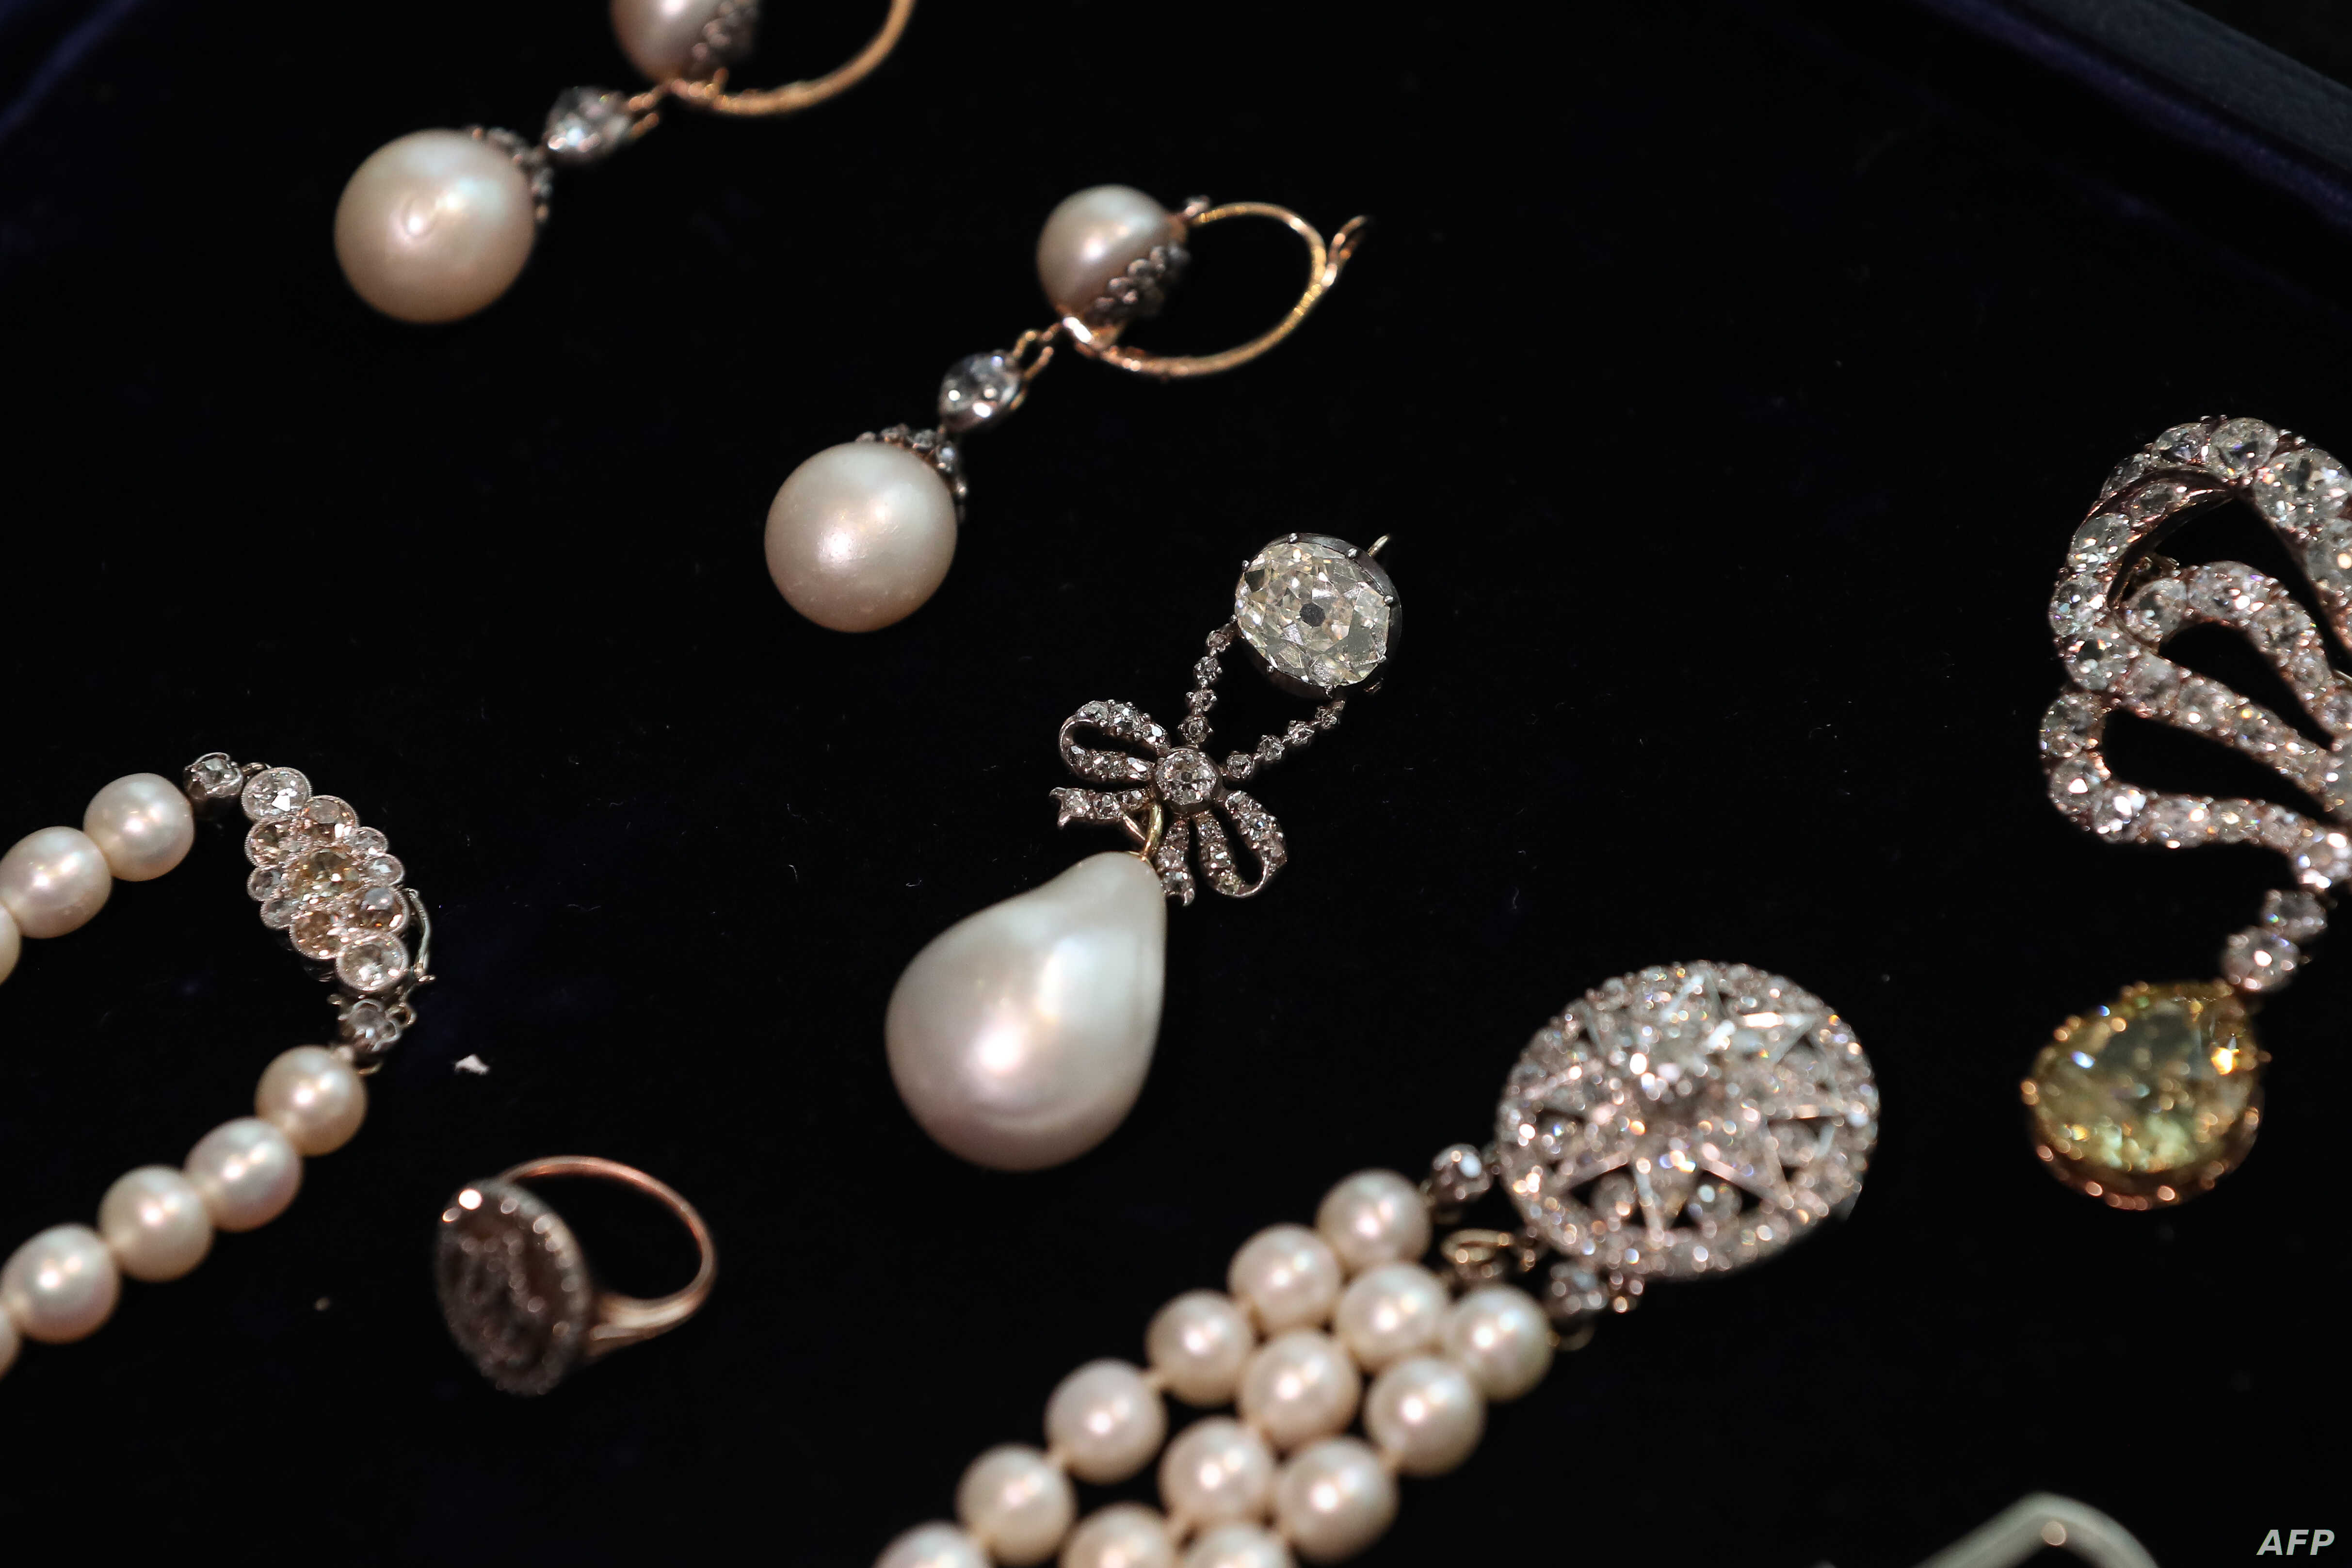 In this file photo taken on Oct. 19, 2018, the 'Queen Marie Antoinette's Pearl,' center, is pictured with other jewellery during a photocall for the sale of 'Royal Jewels from the Bourbon Parma Family.'